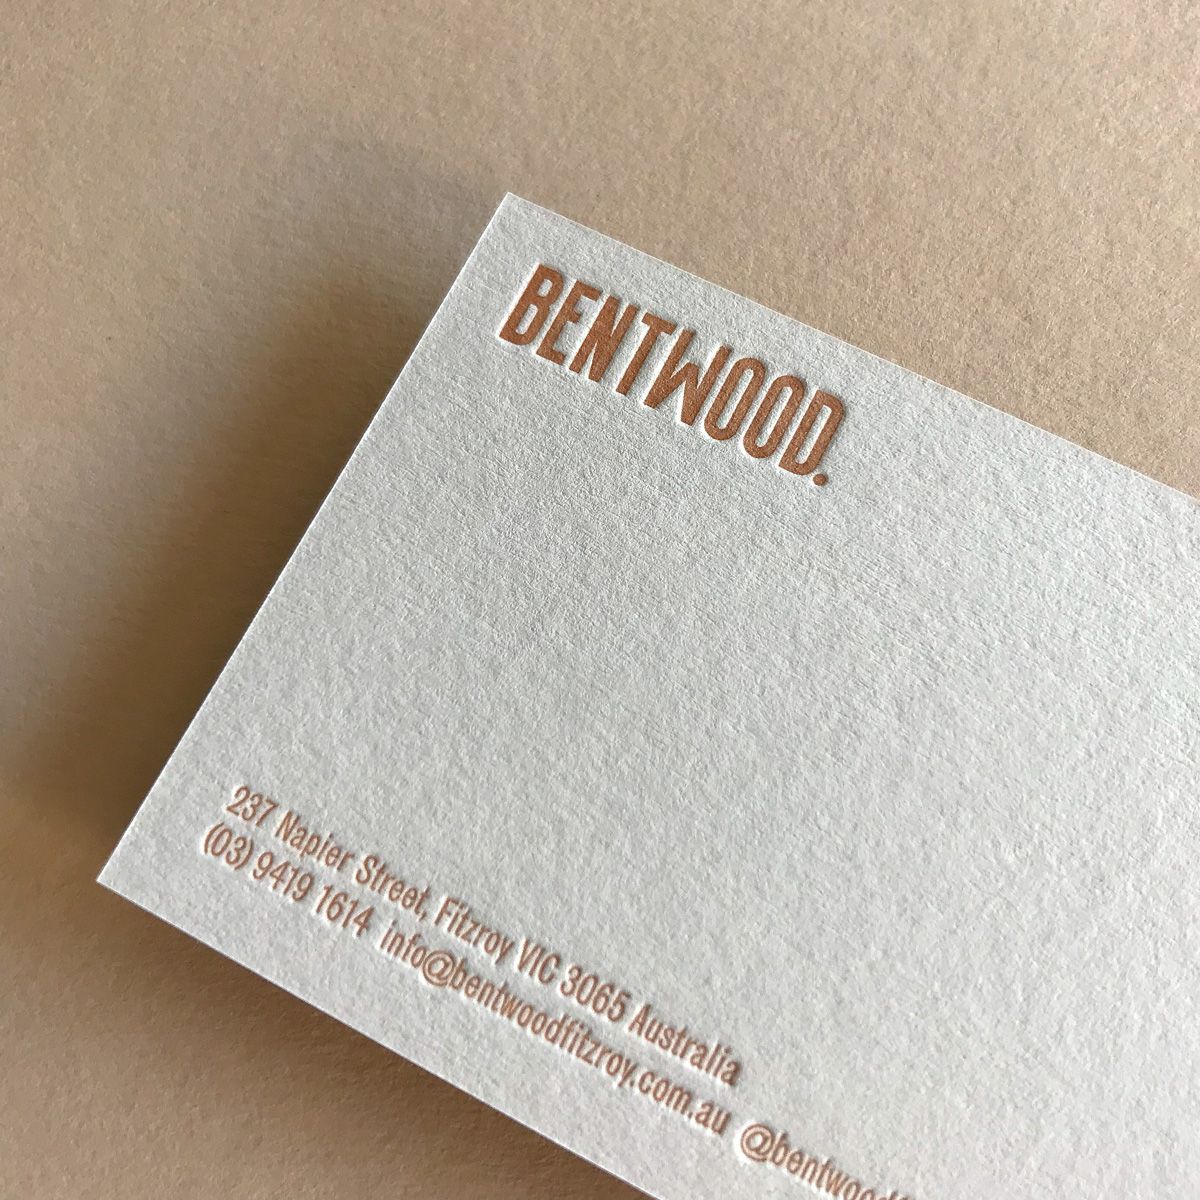 Custom letterpress business cards for Bentwood on Colorplan Mist 1